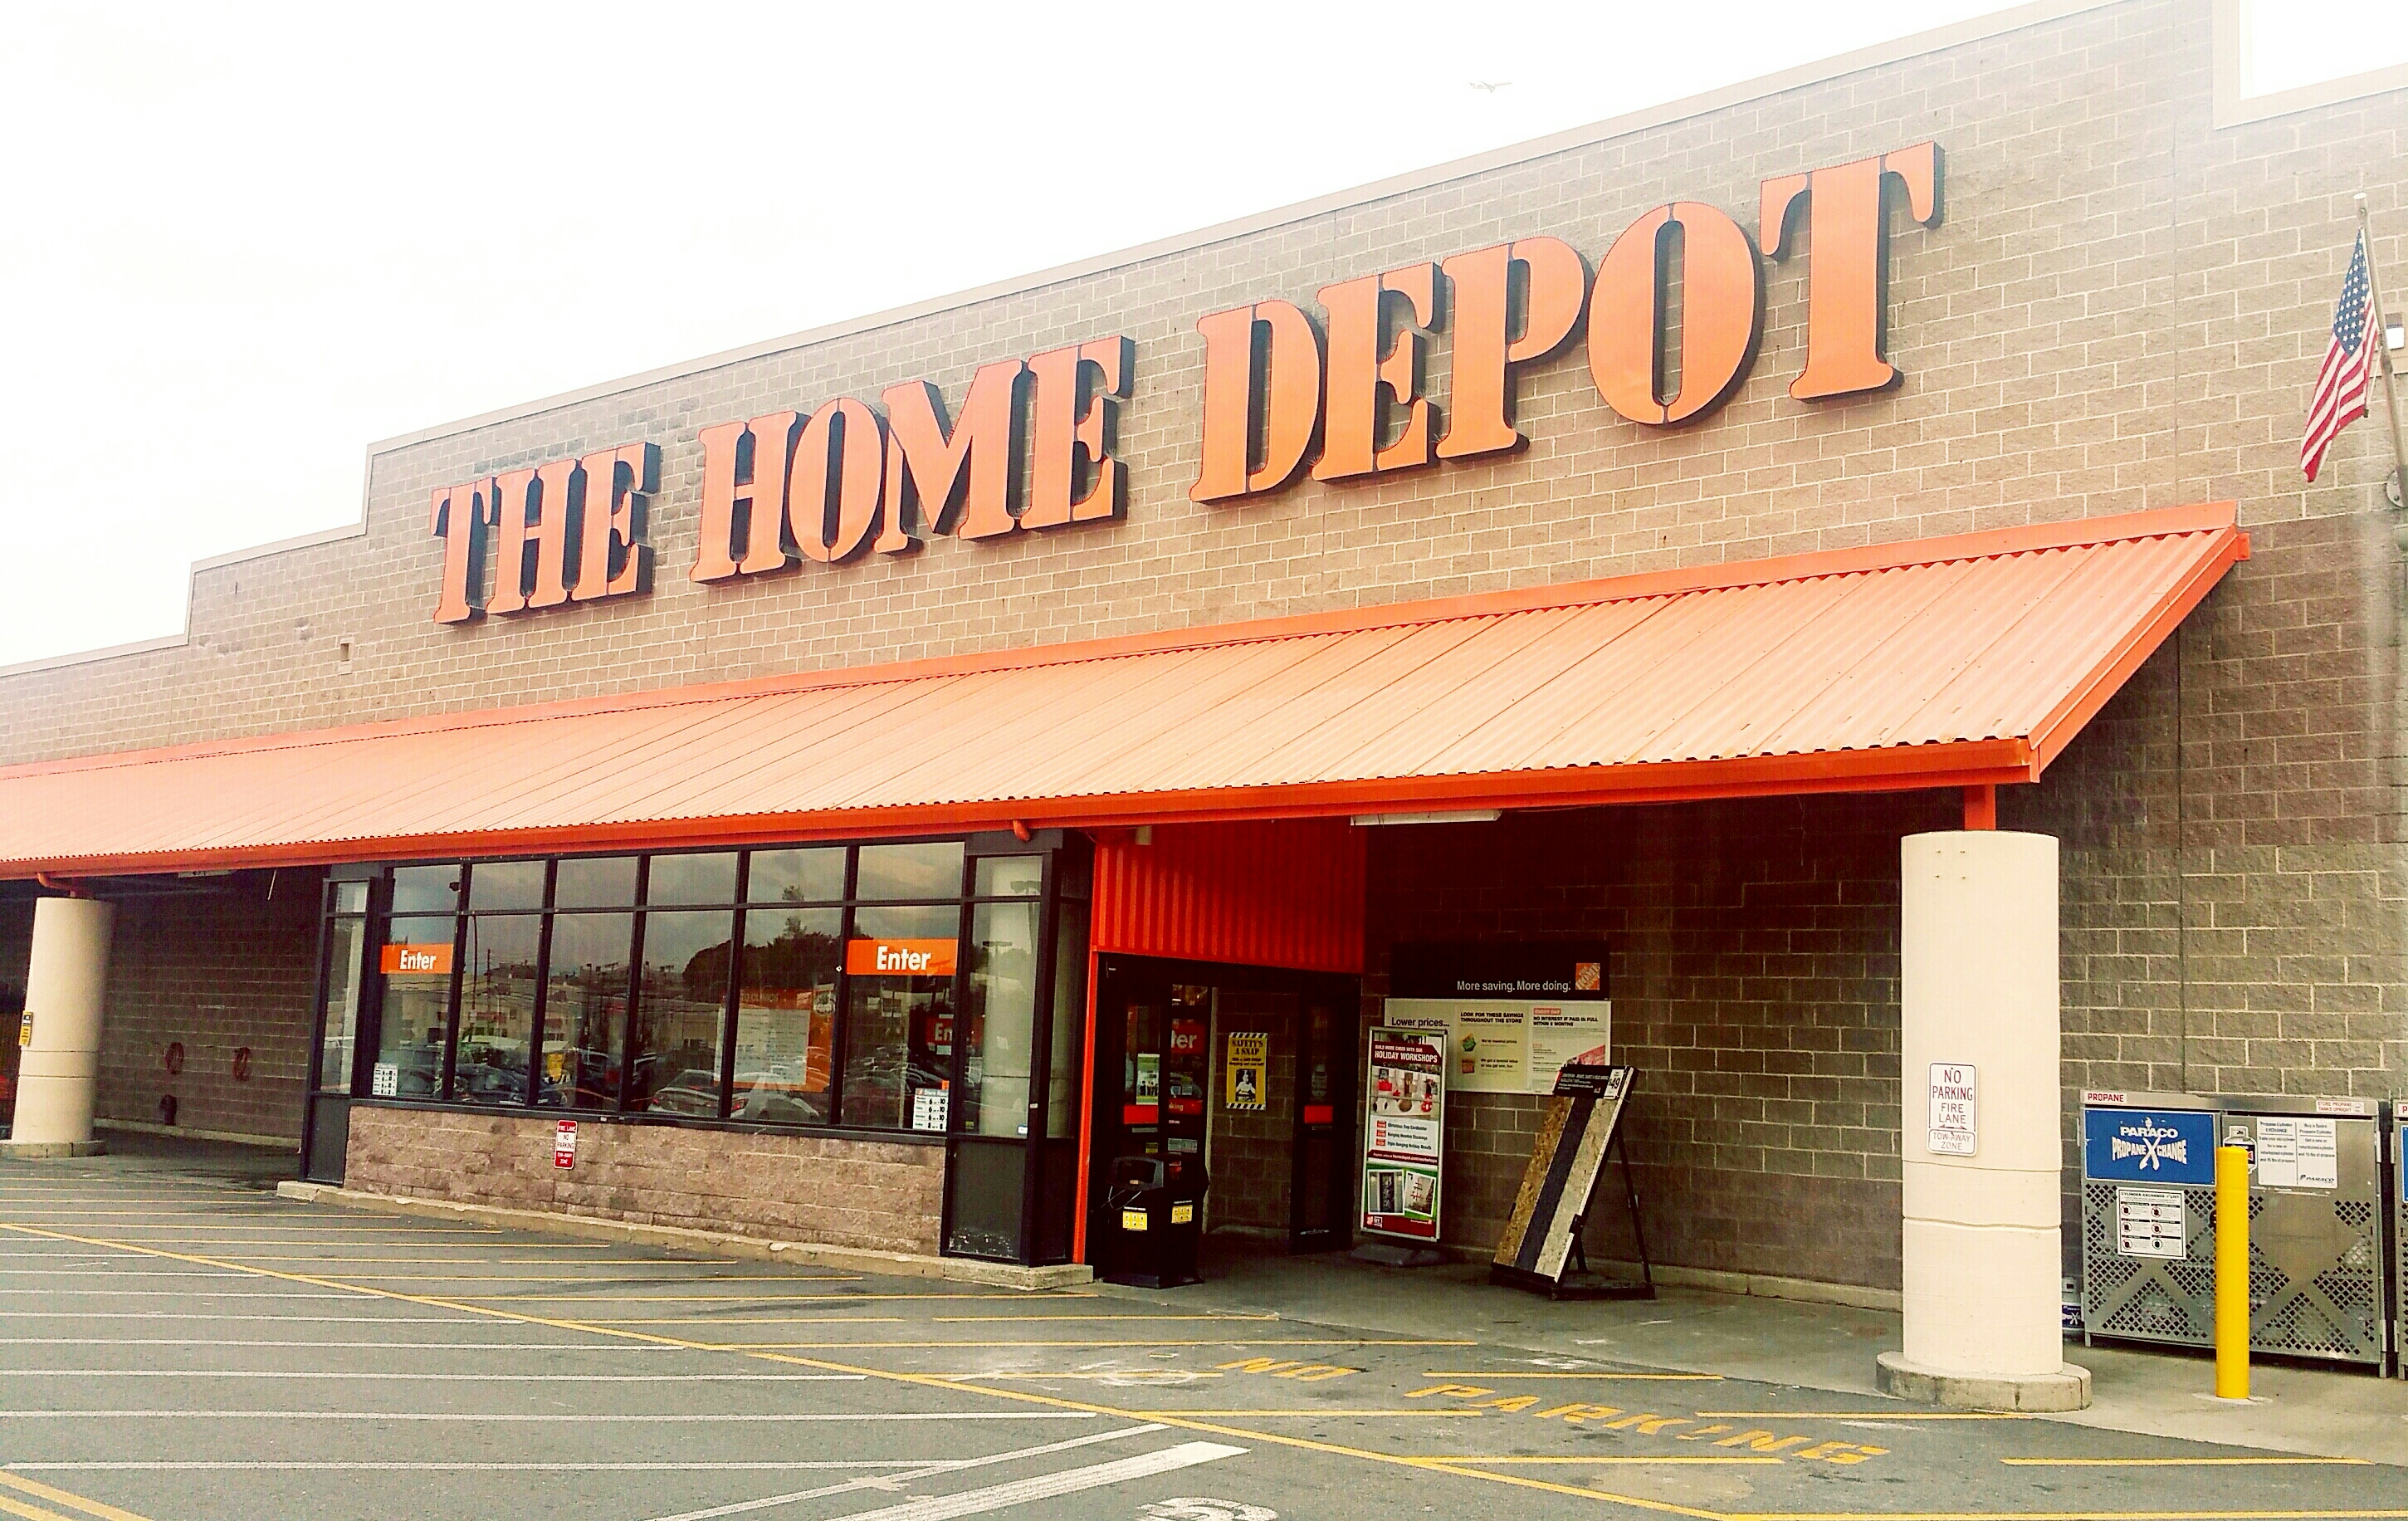 the home depot in new rochelle ny 10805. Black Bedroom Furniture Sets. Home Design Ideas